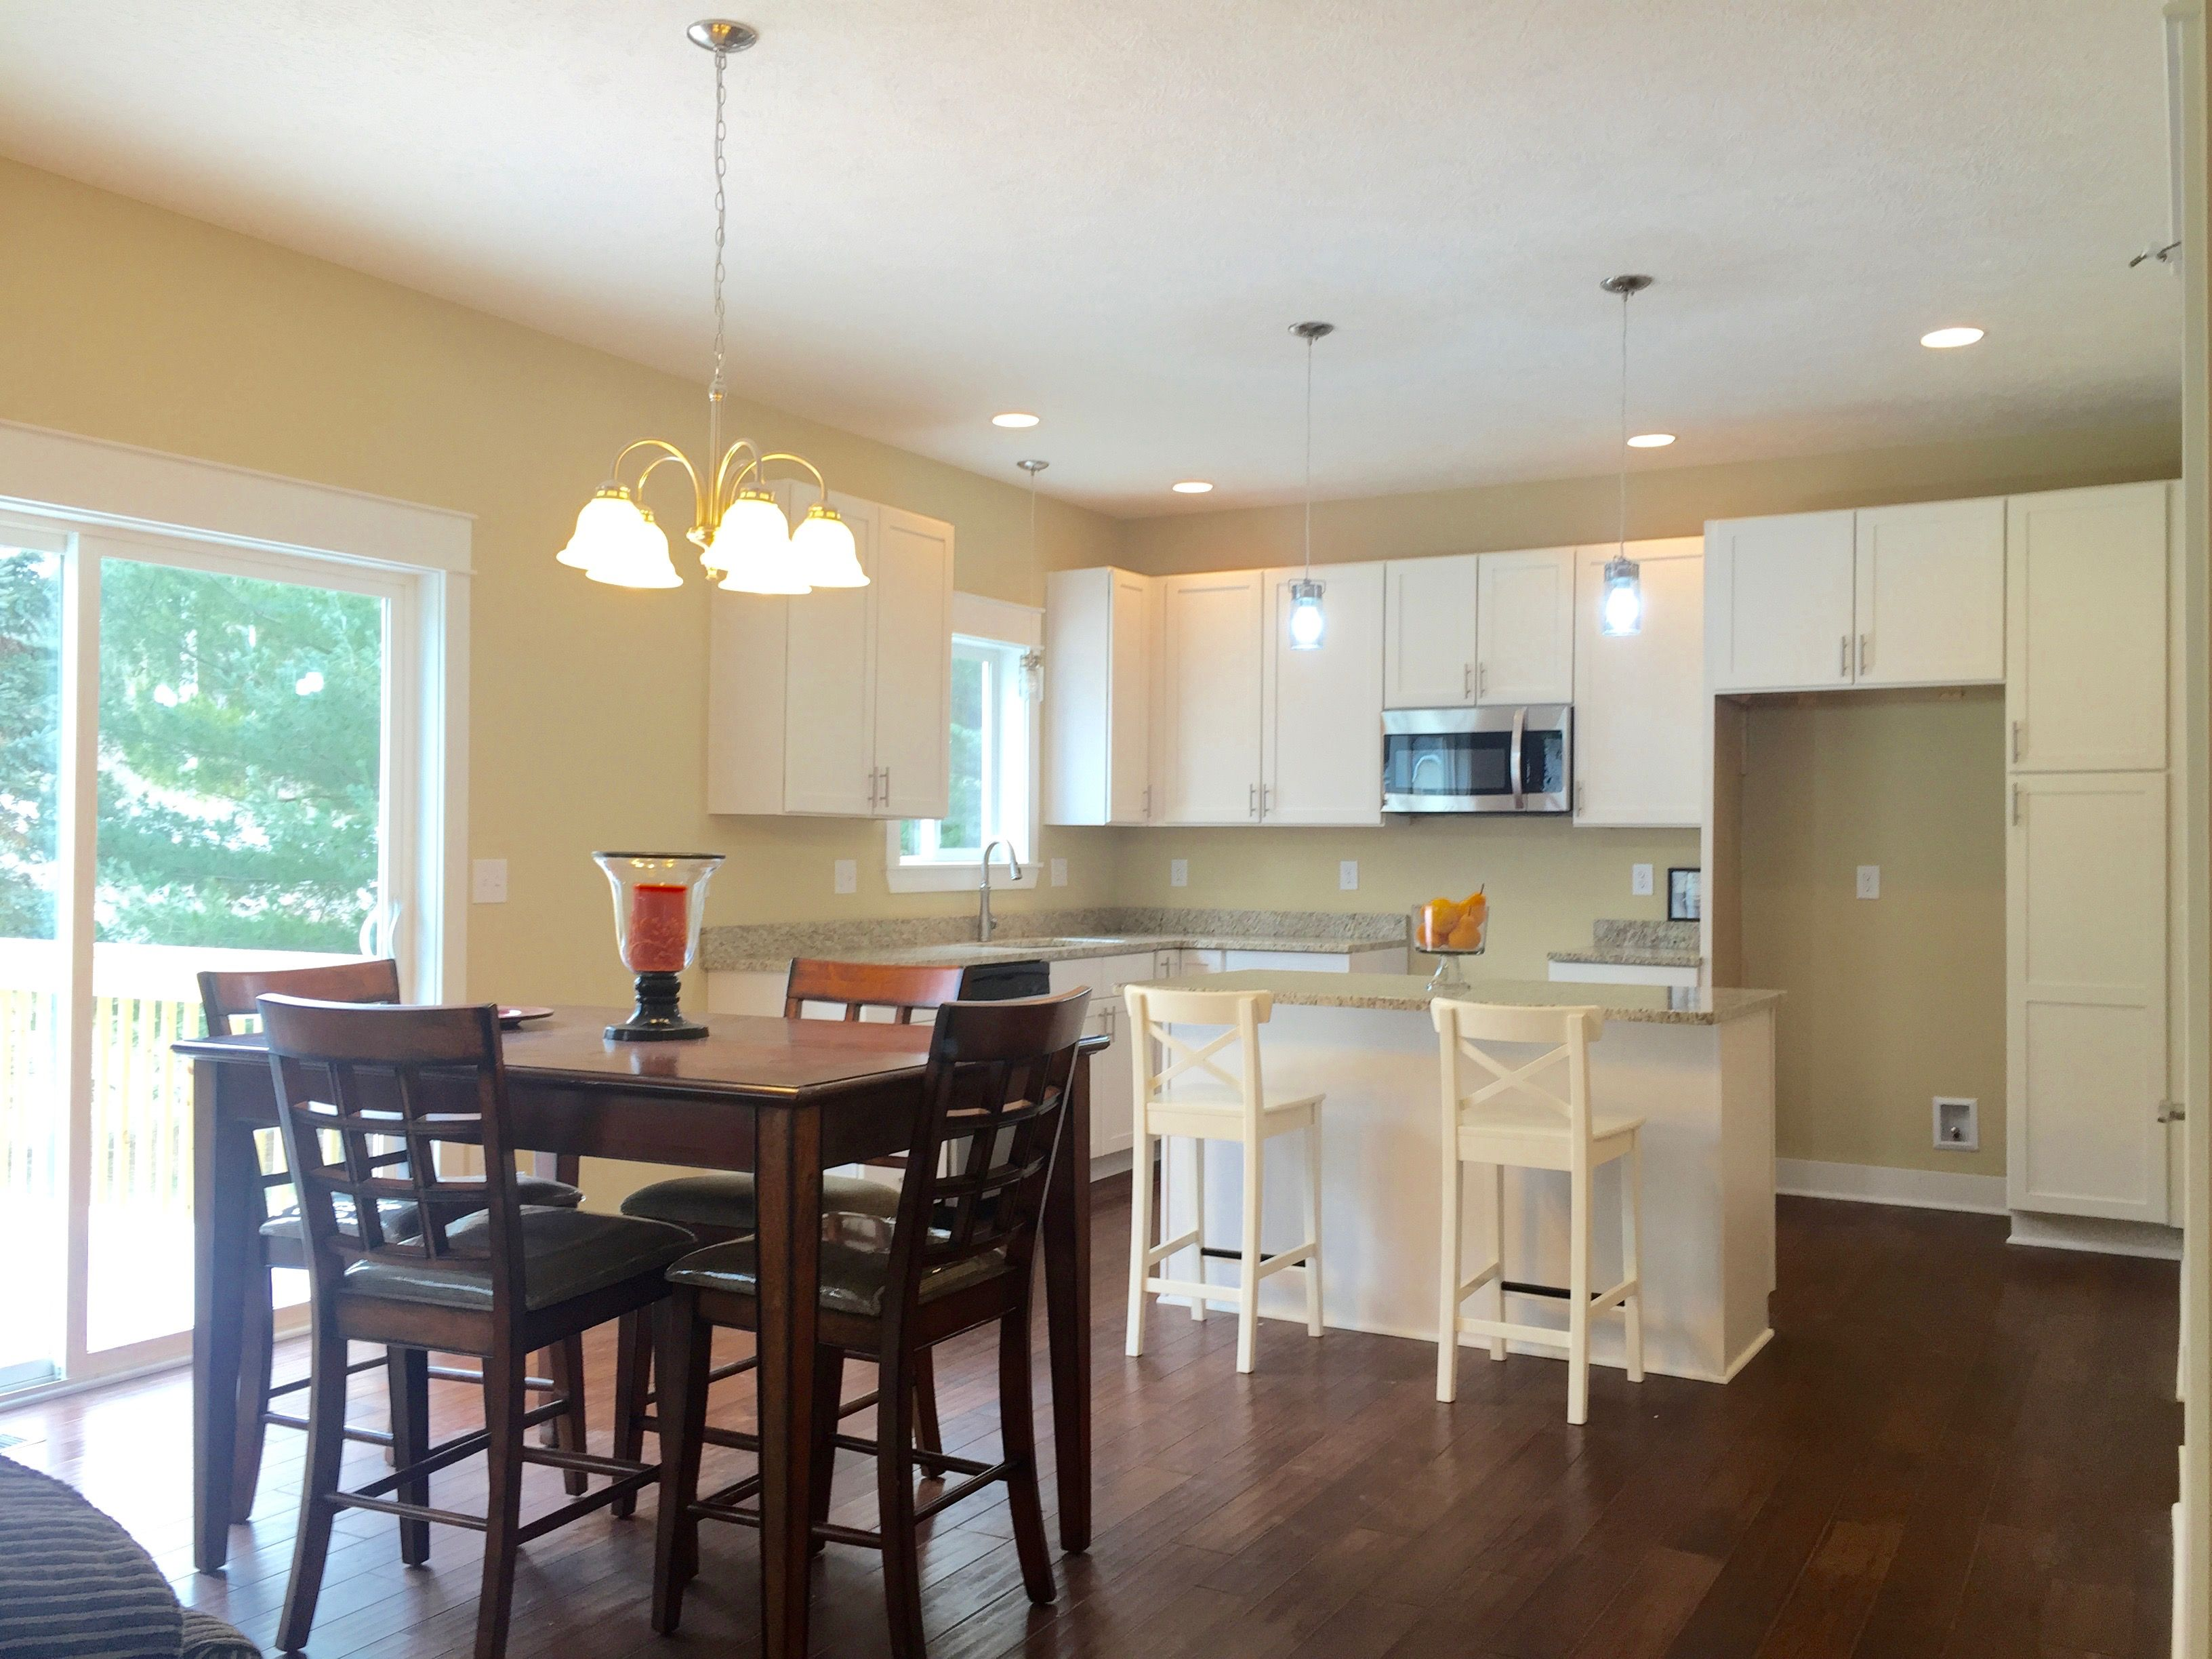 Kitchen featured in the Chester By CVE Homes in Jackson, MI